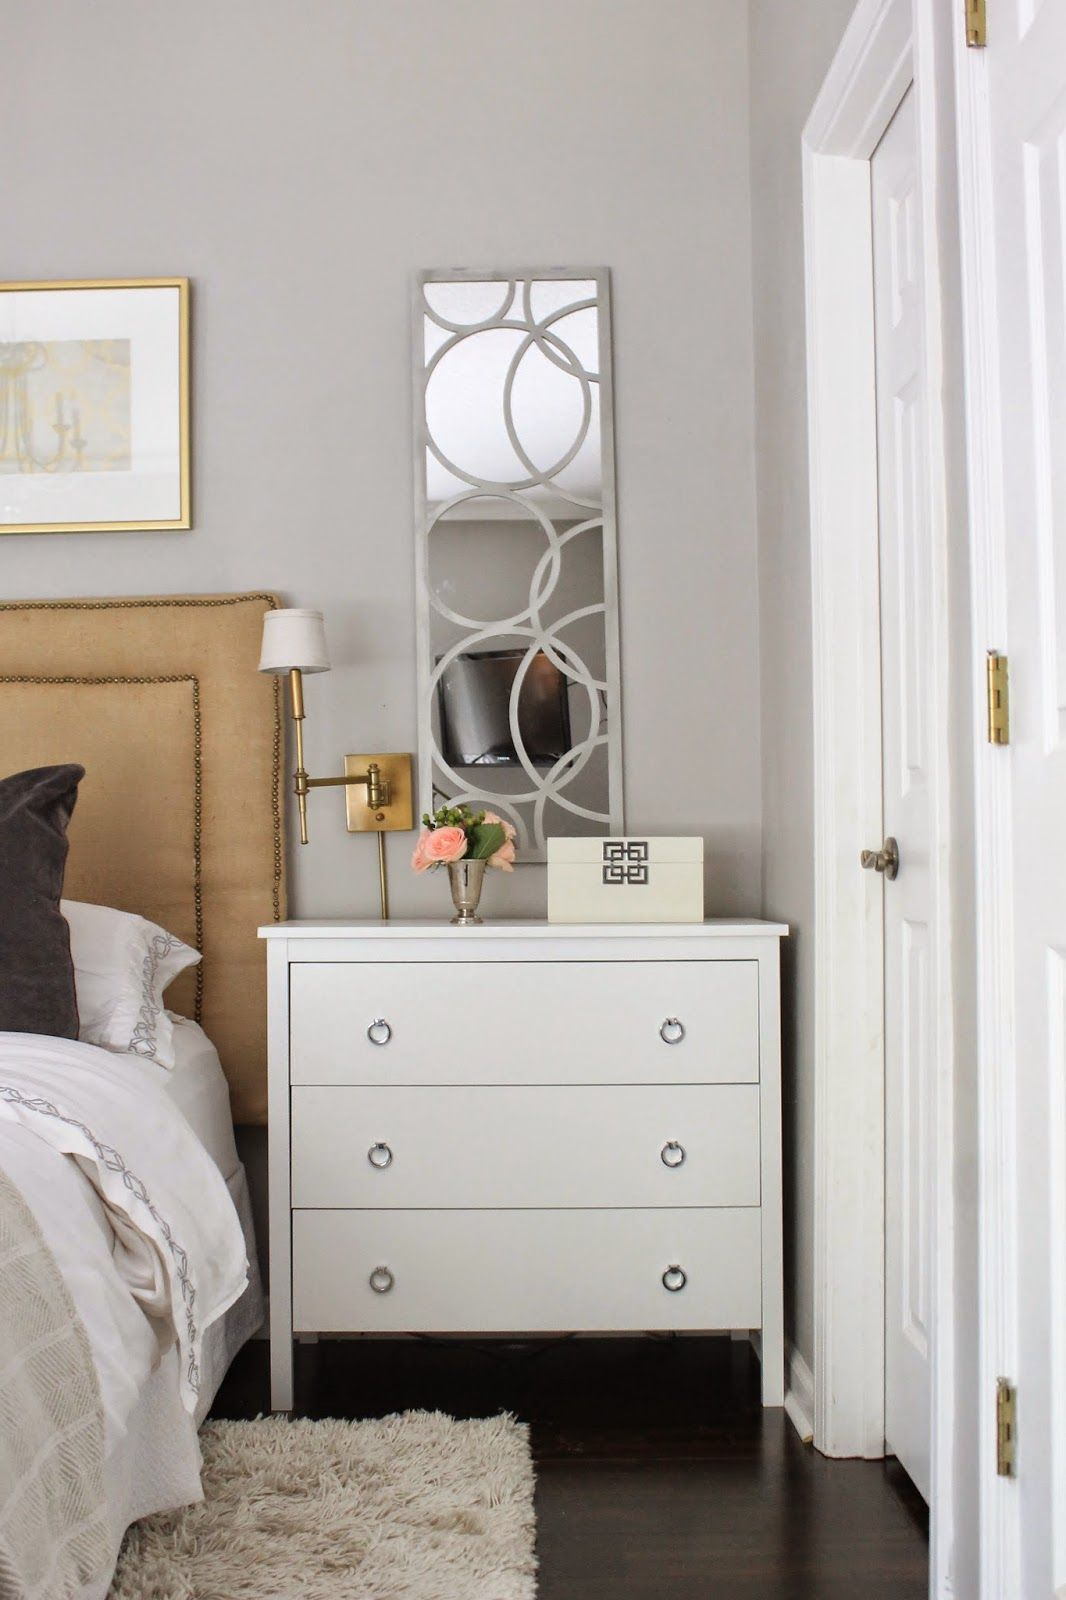 hot sale online 2e809 16166 IKEA Koppang dresser | Home{BEDROOM} in 2019 | Bedroom night ...